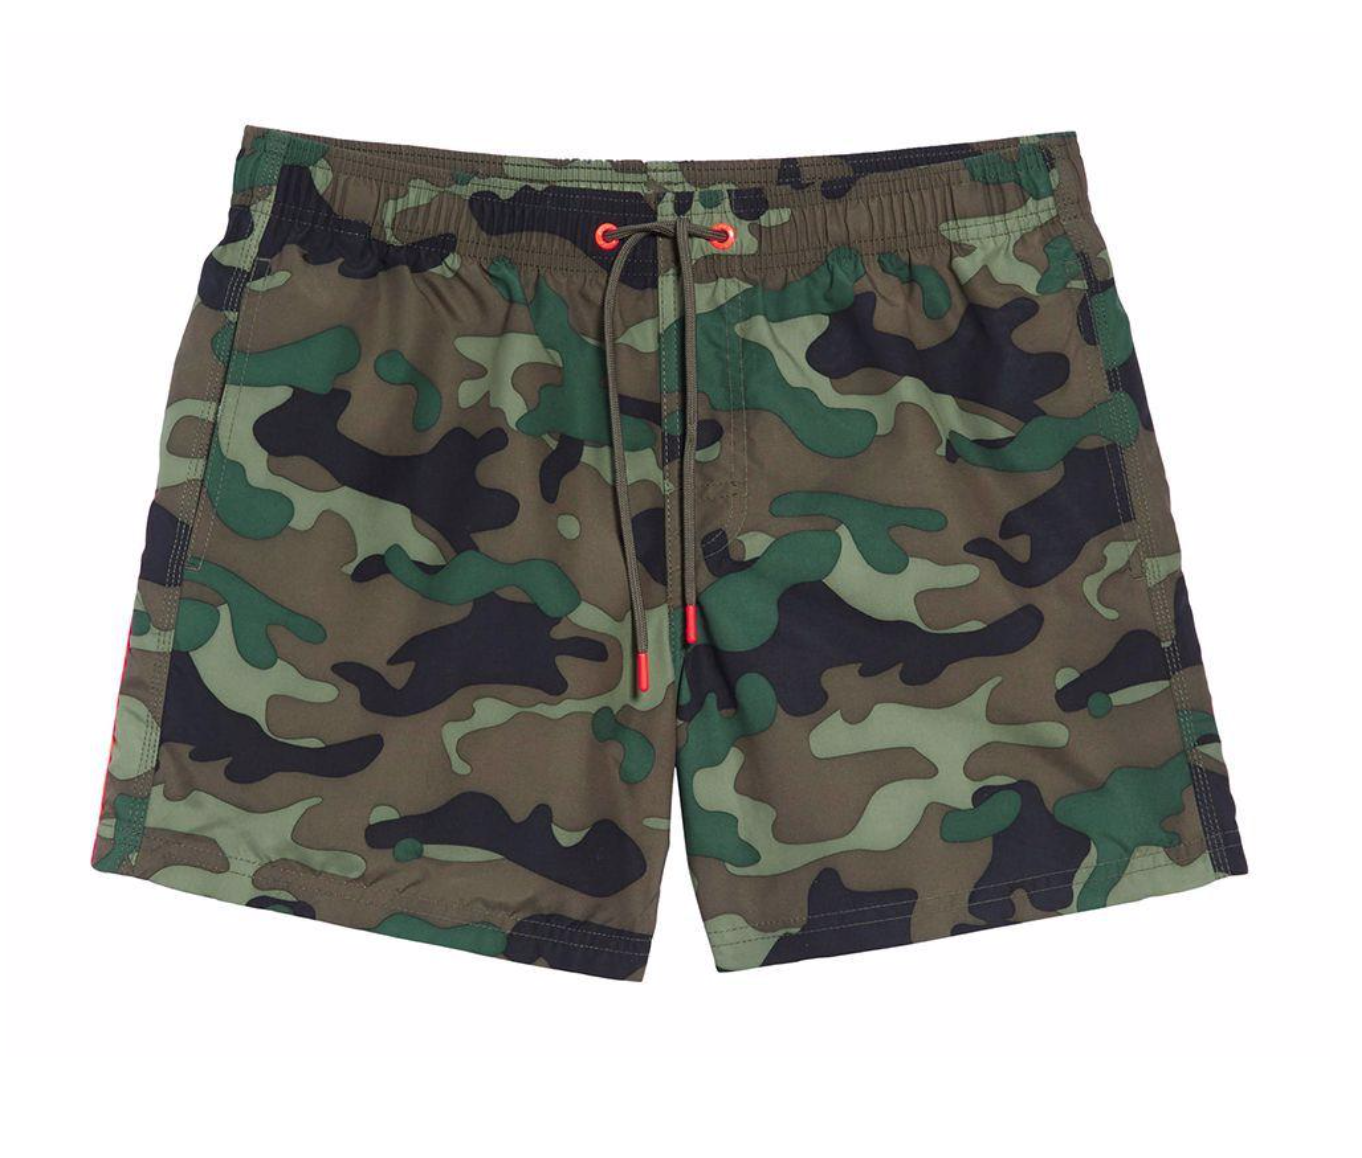 Sundek - Stretch Waist Short Swim Trunks / $139.00Camo is still in and hot! These shorts are the perfect bold, camo print for the summer.